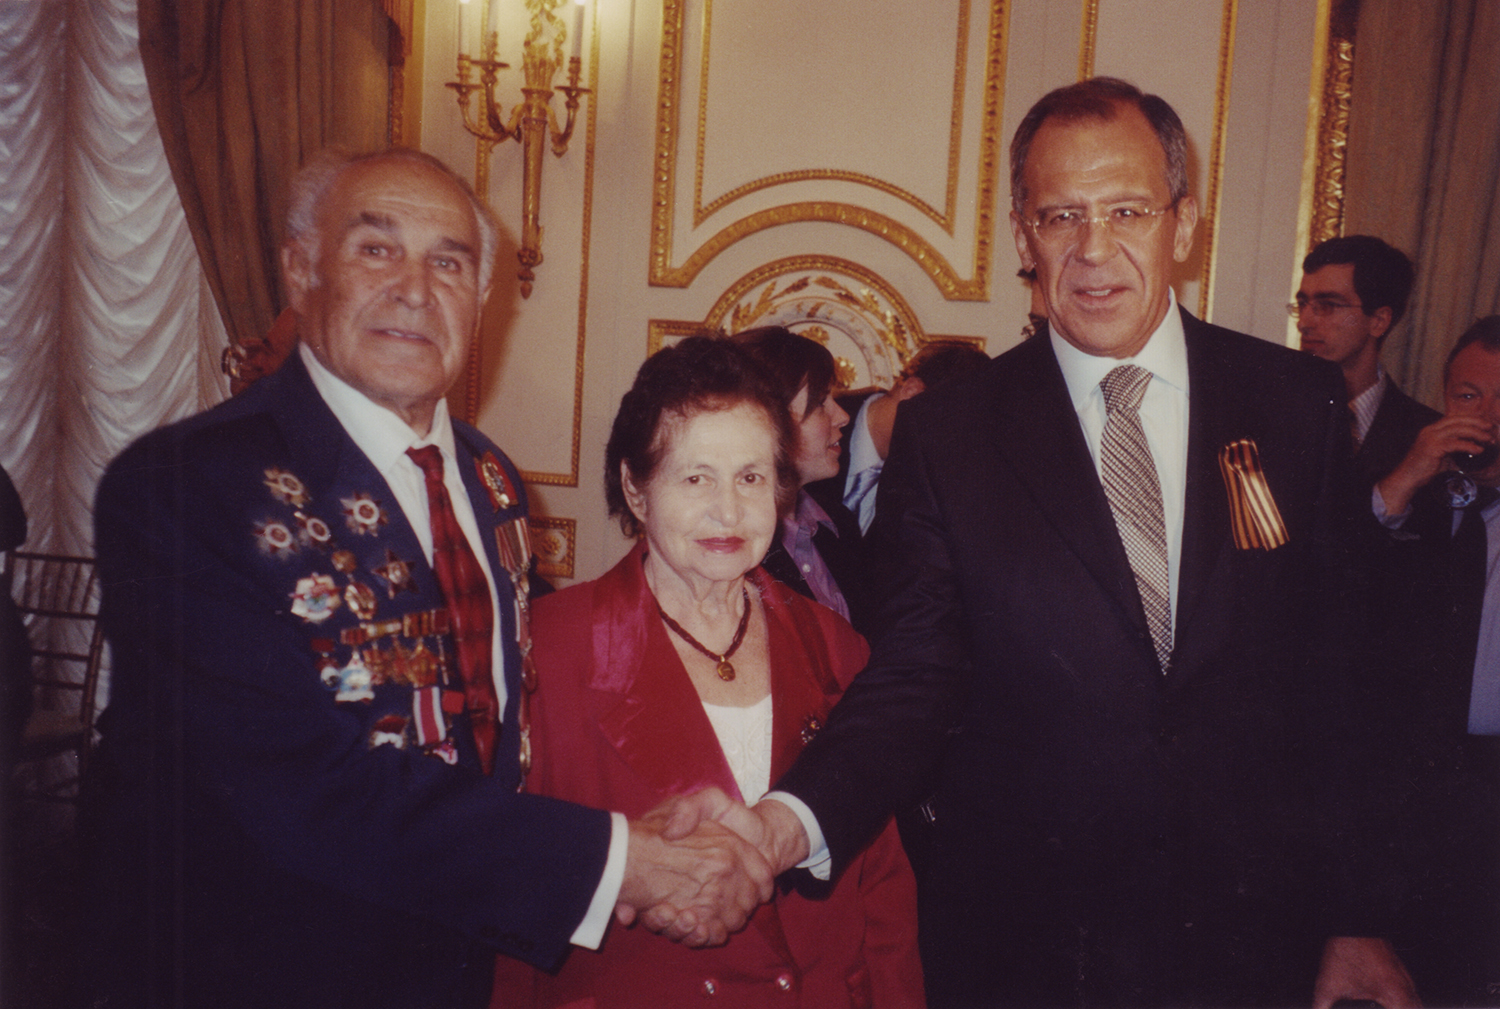 Leonid Rozenberg with his wife Fanya and Russian Foreign Minister Sergey Lavrov